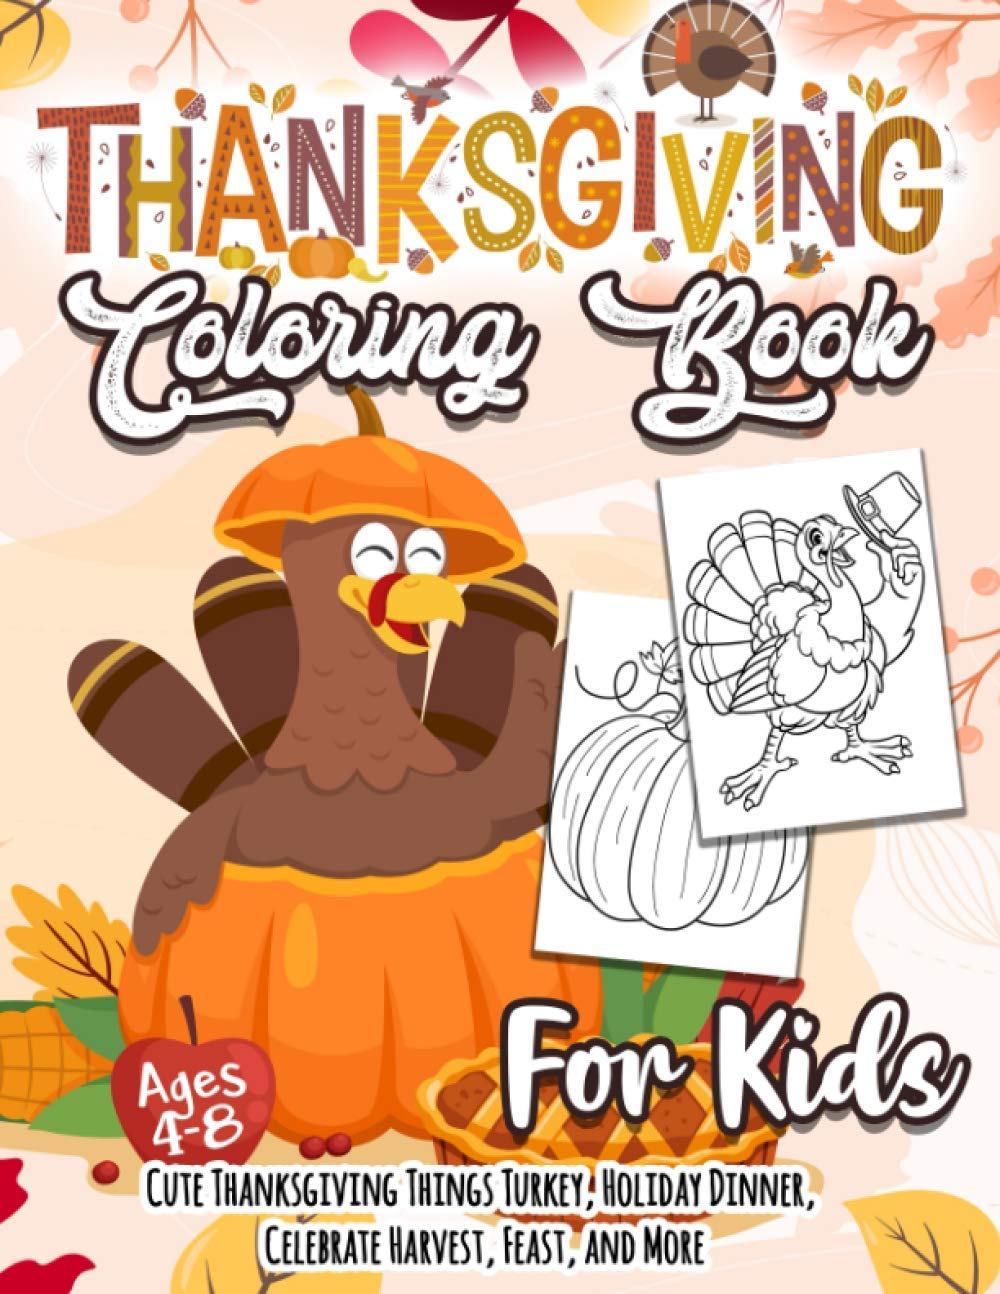 Thanksgiving Coloring Book For Kids A Collection Of Coloring Pages With Cute Thanksgiving Things Such As Turkey Celebrate Harvest Holiday Dinner Feast And More Press Happy Turkey 9798698413738 Amazon Com Books